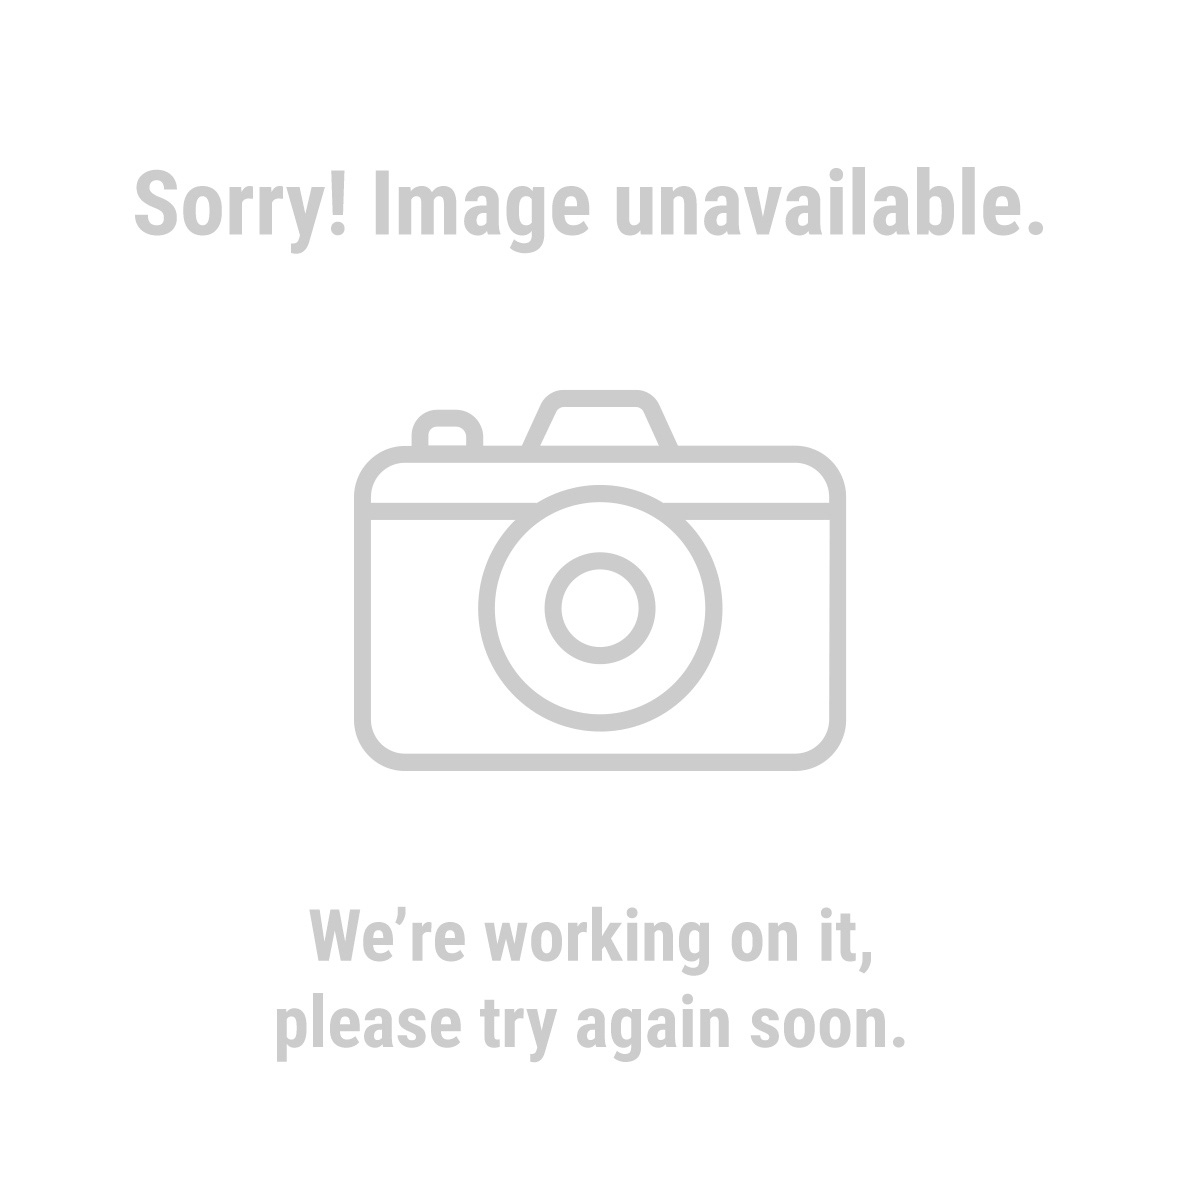 Chicago Welding 68782 Variable Auto Darkening Welding Helmet with Metal Head Design